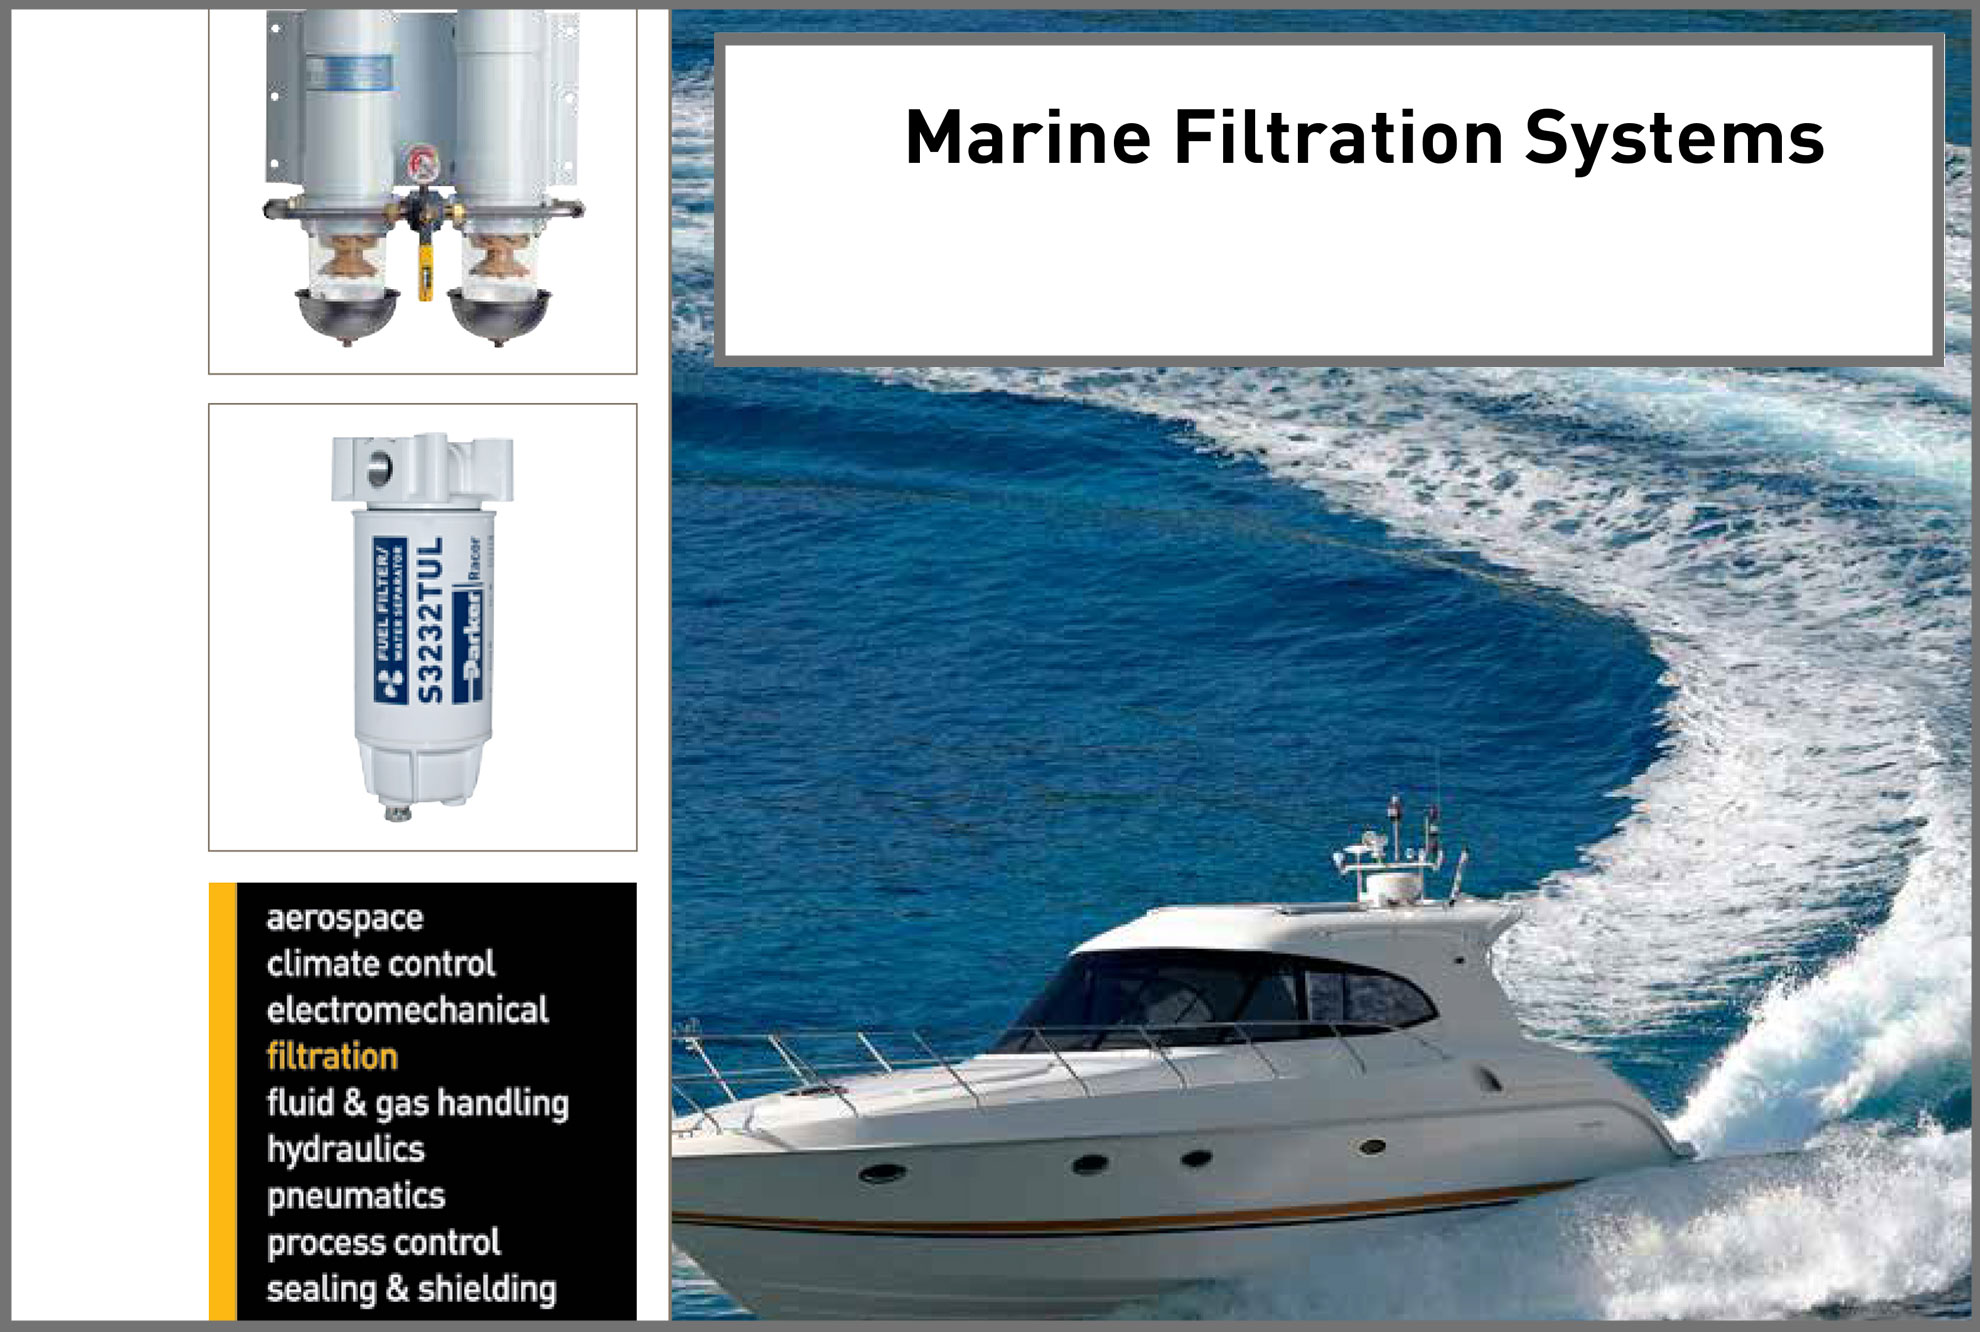 https://www.thomasgroupltd.co.uk/wp-content/uploads/2019/01/Marine_Filtration-IMAGE.jpg